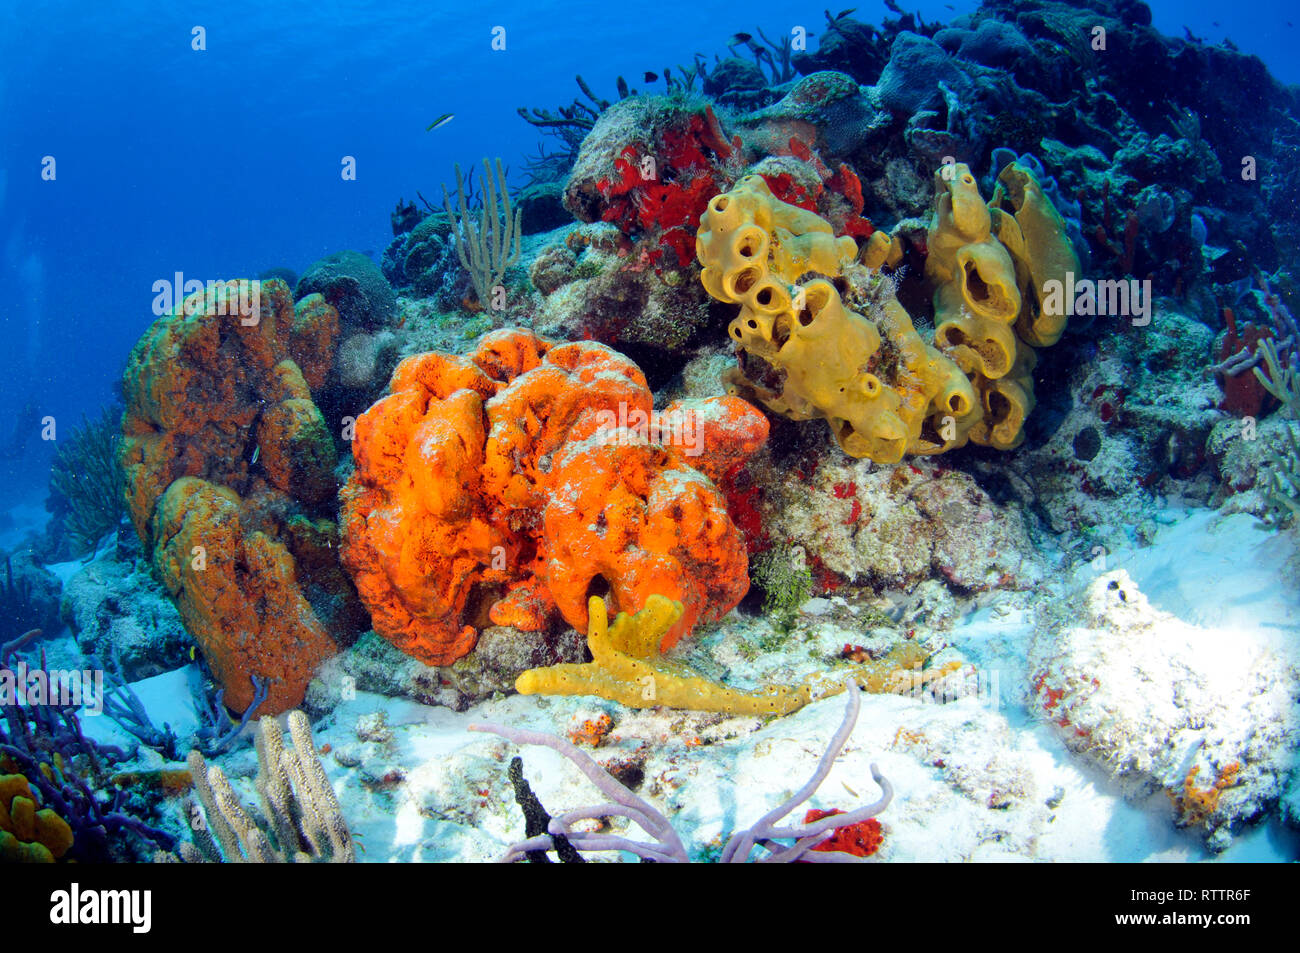 Colorful coral reefs and sponges, Cozumel,  Quintana-Roo, Mexico, Caribbean Sea - Stock Image